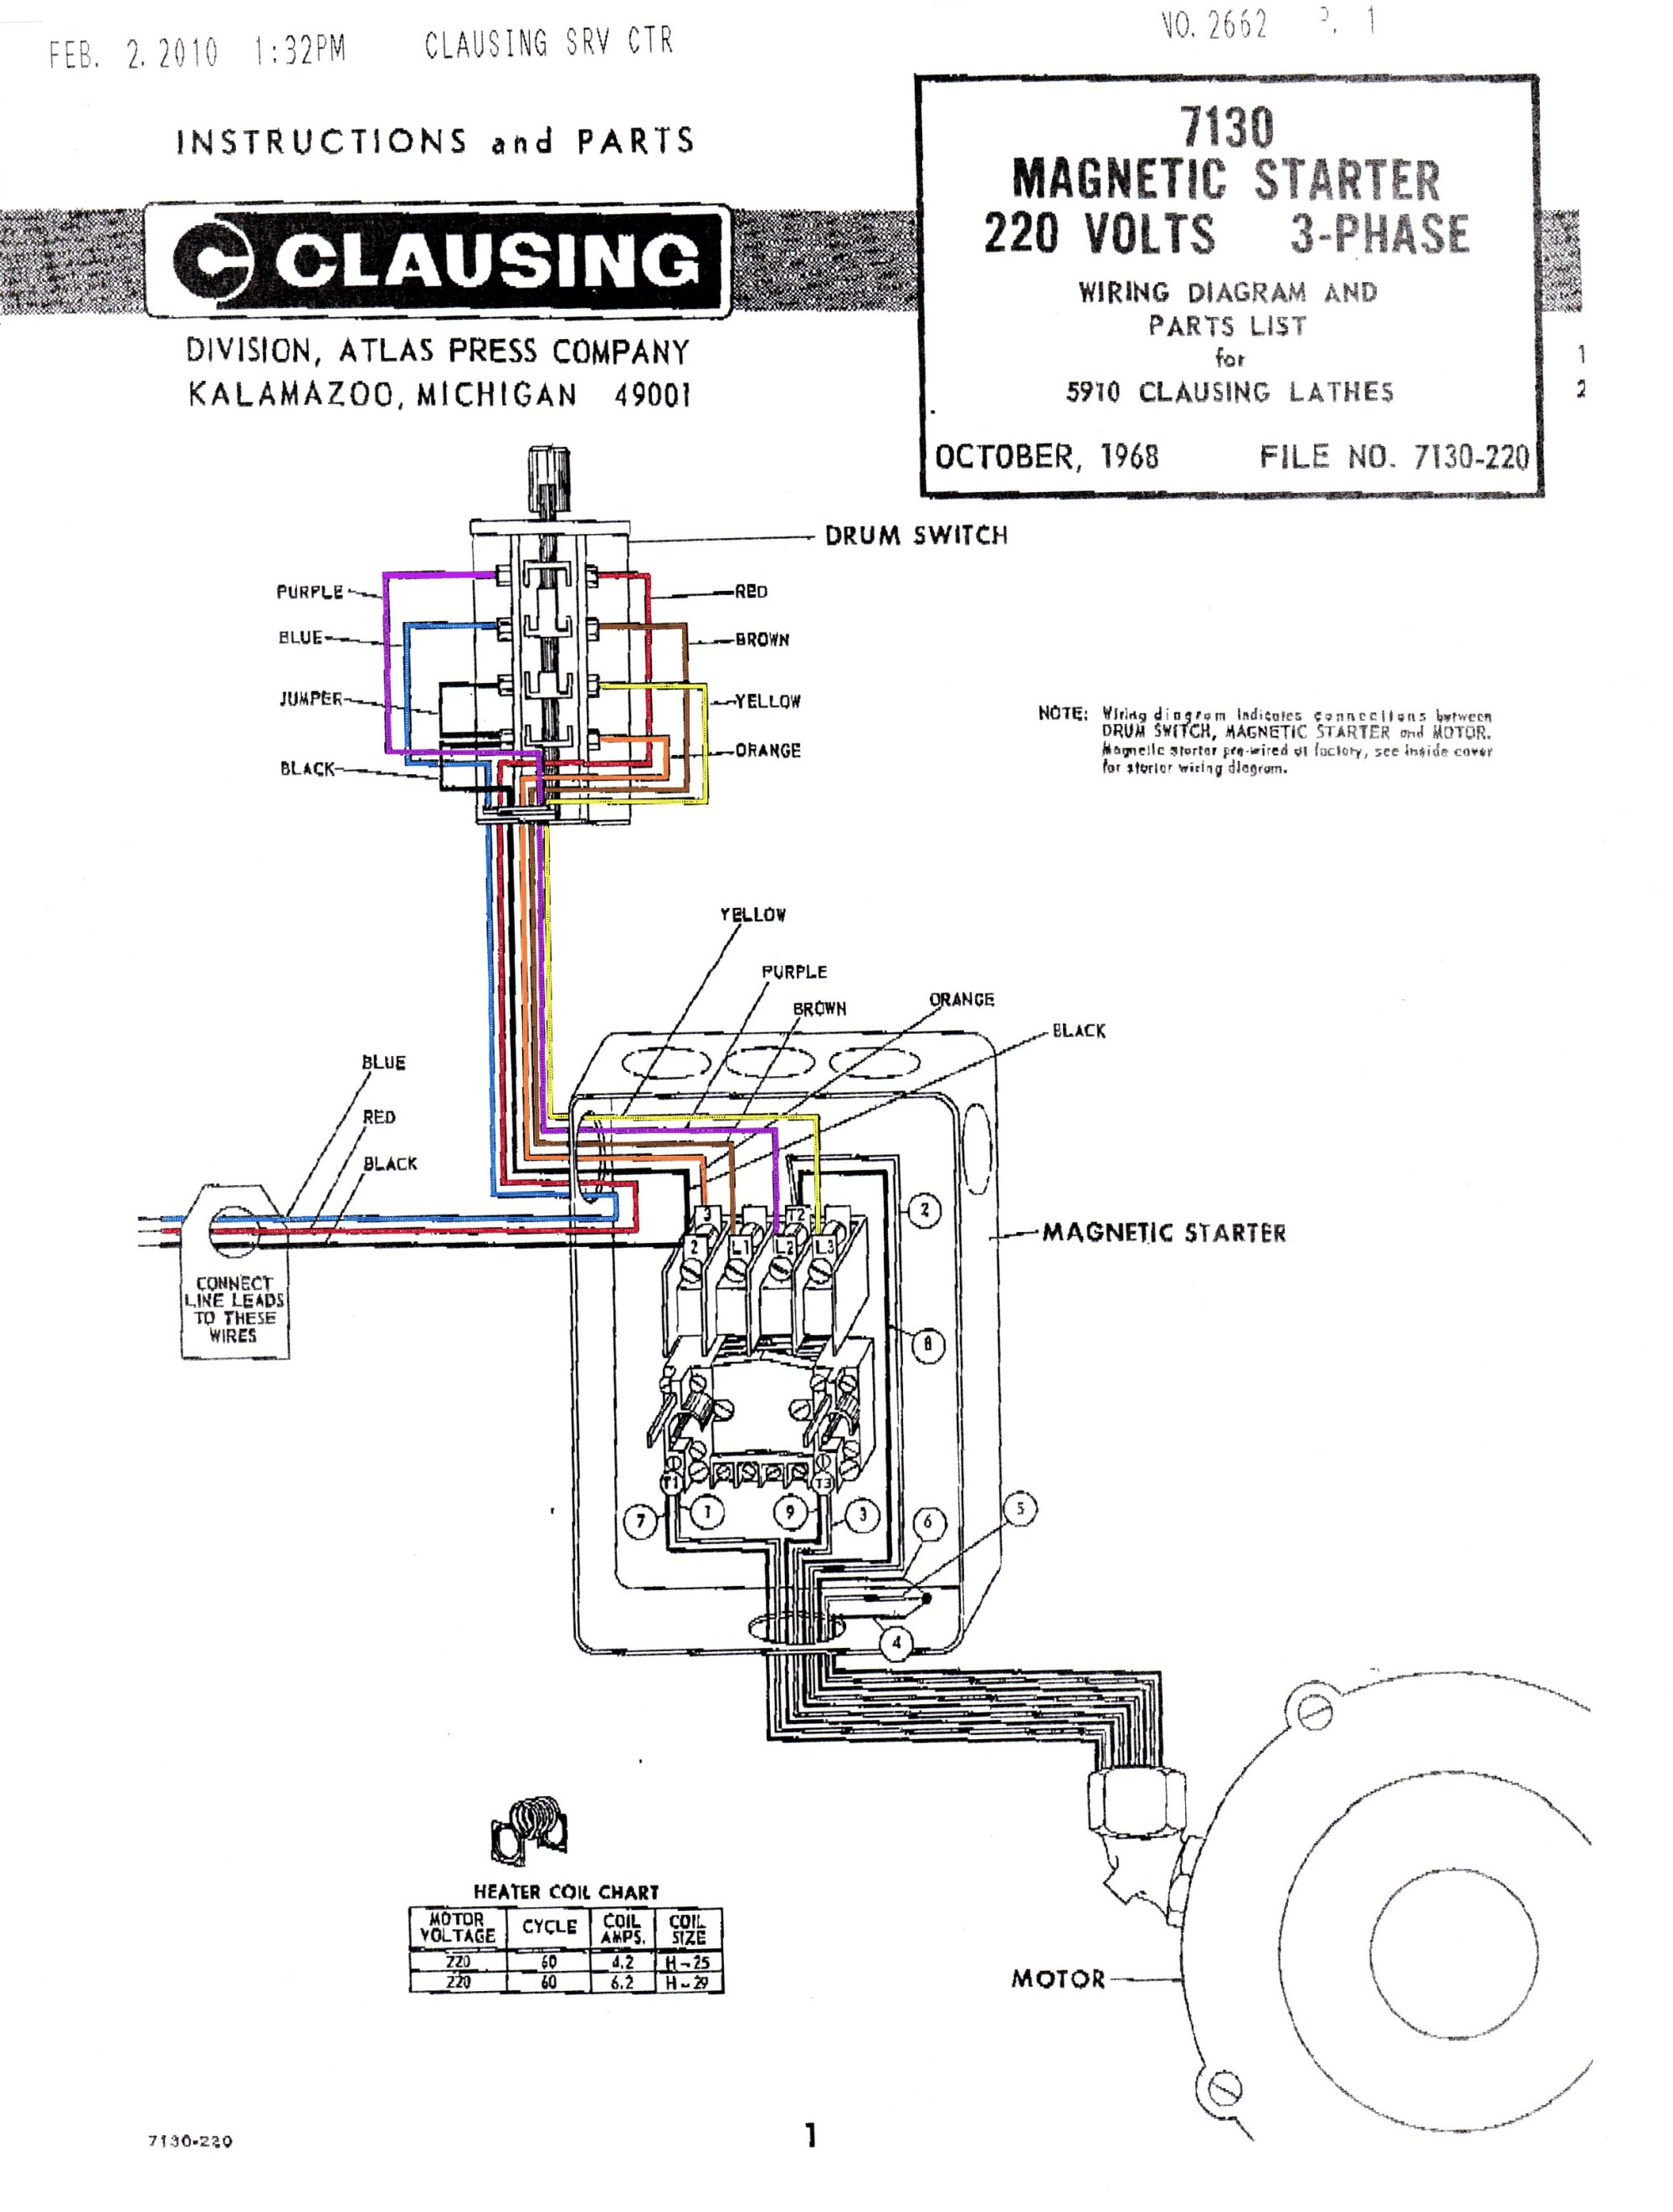 hight resolution of 3 phase motor starter relay wiring diagram allen bradley 3 air conditioning compressor wiring diagram hvac compressor wiring diagram